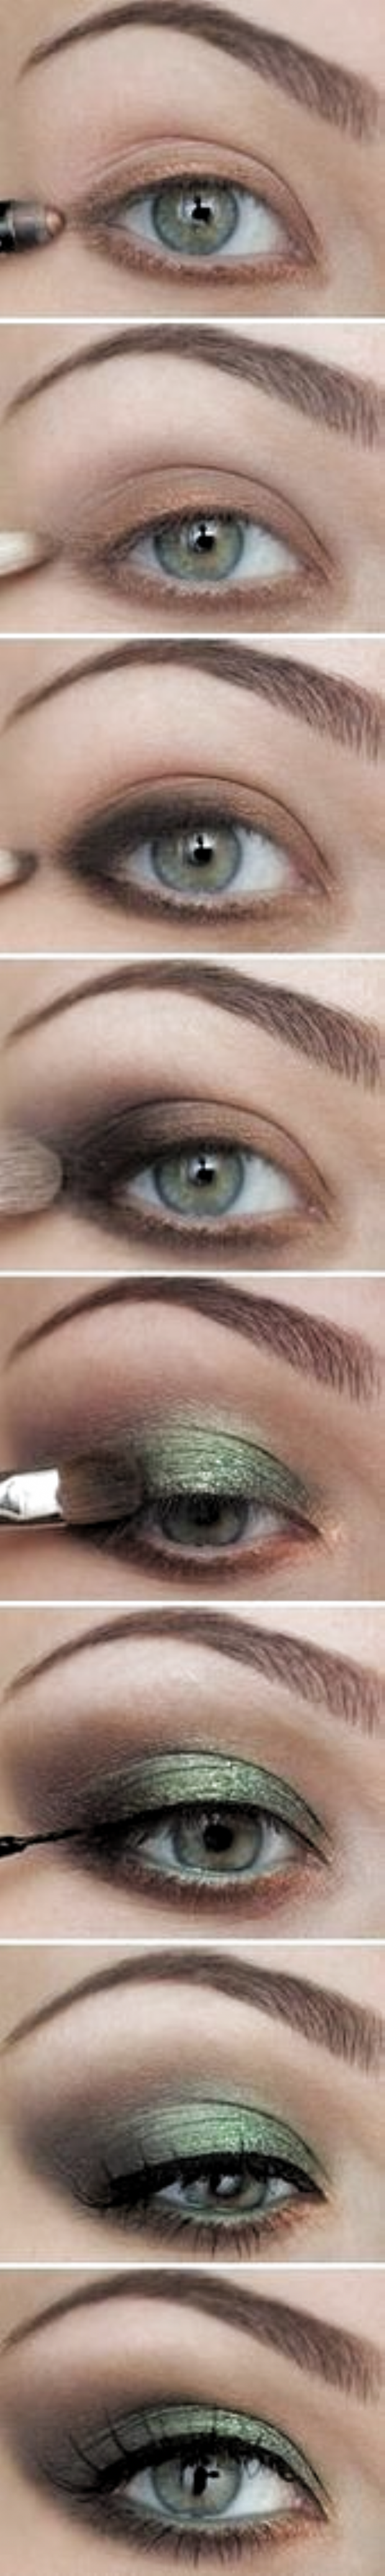 Photo of Make Up Green Eye – Make Up Techniques – #eye #form #Green #Makeup #Tech …